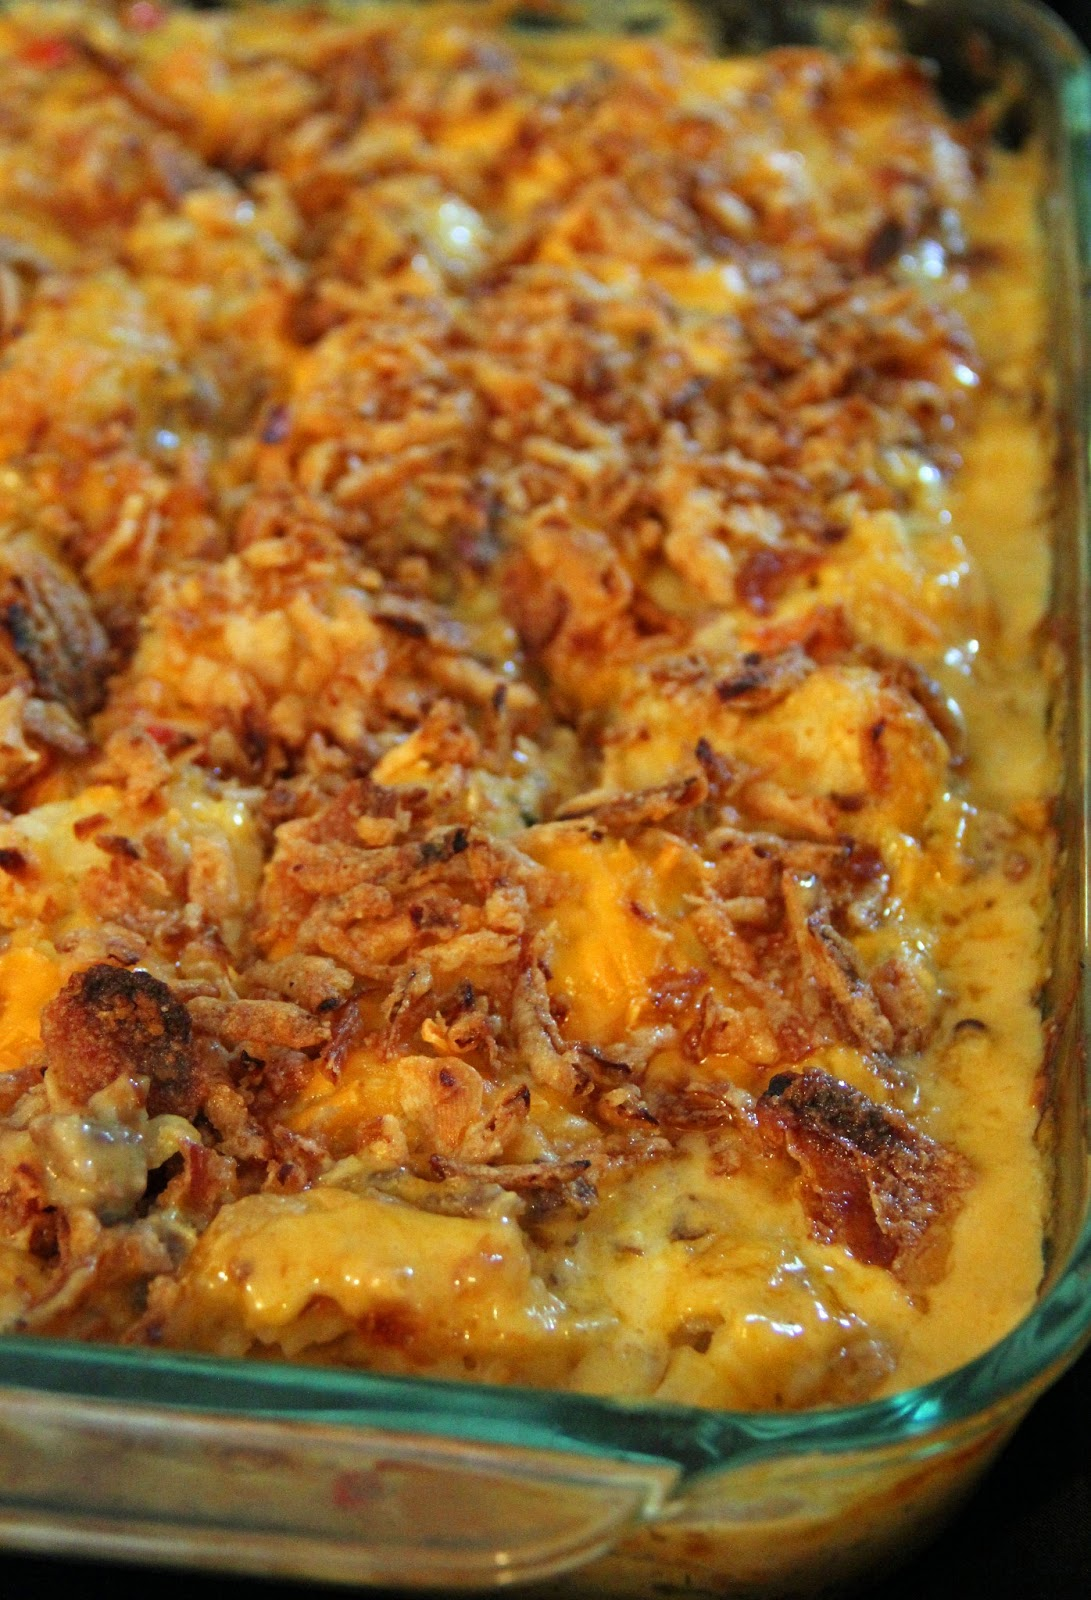 Jo and Sue: Easy Cheesy Tater Tot Casserole